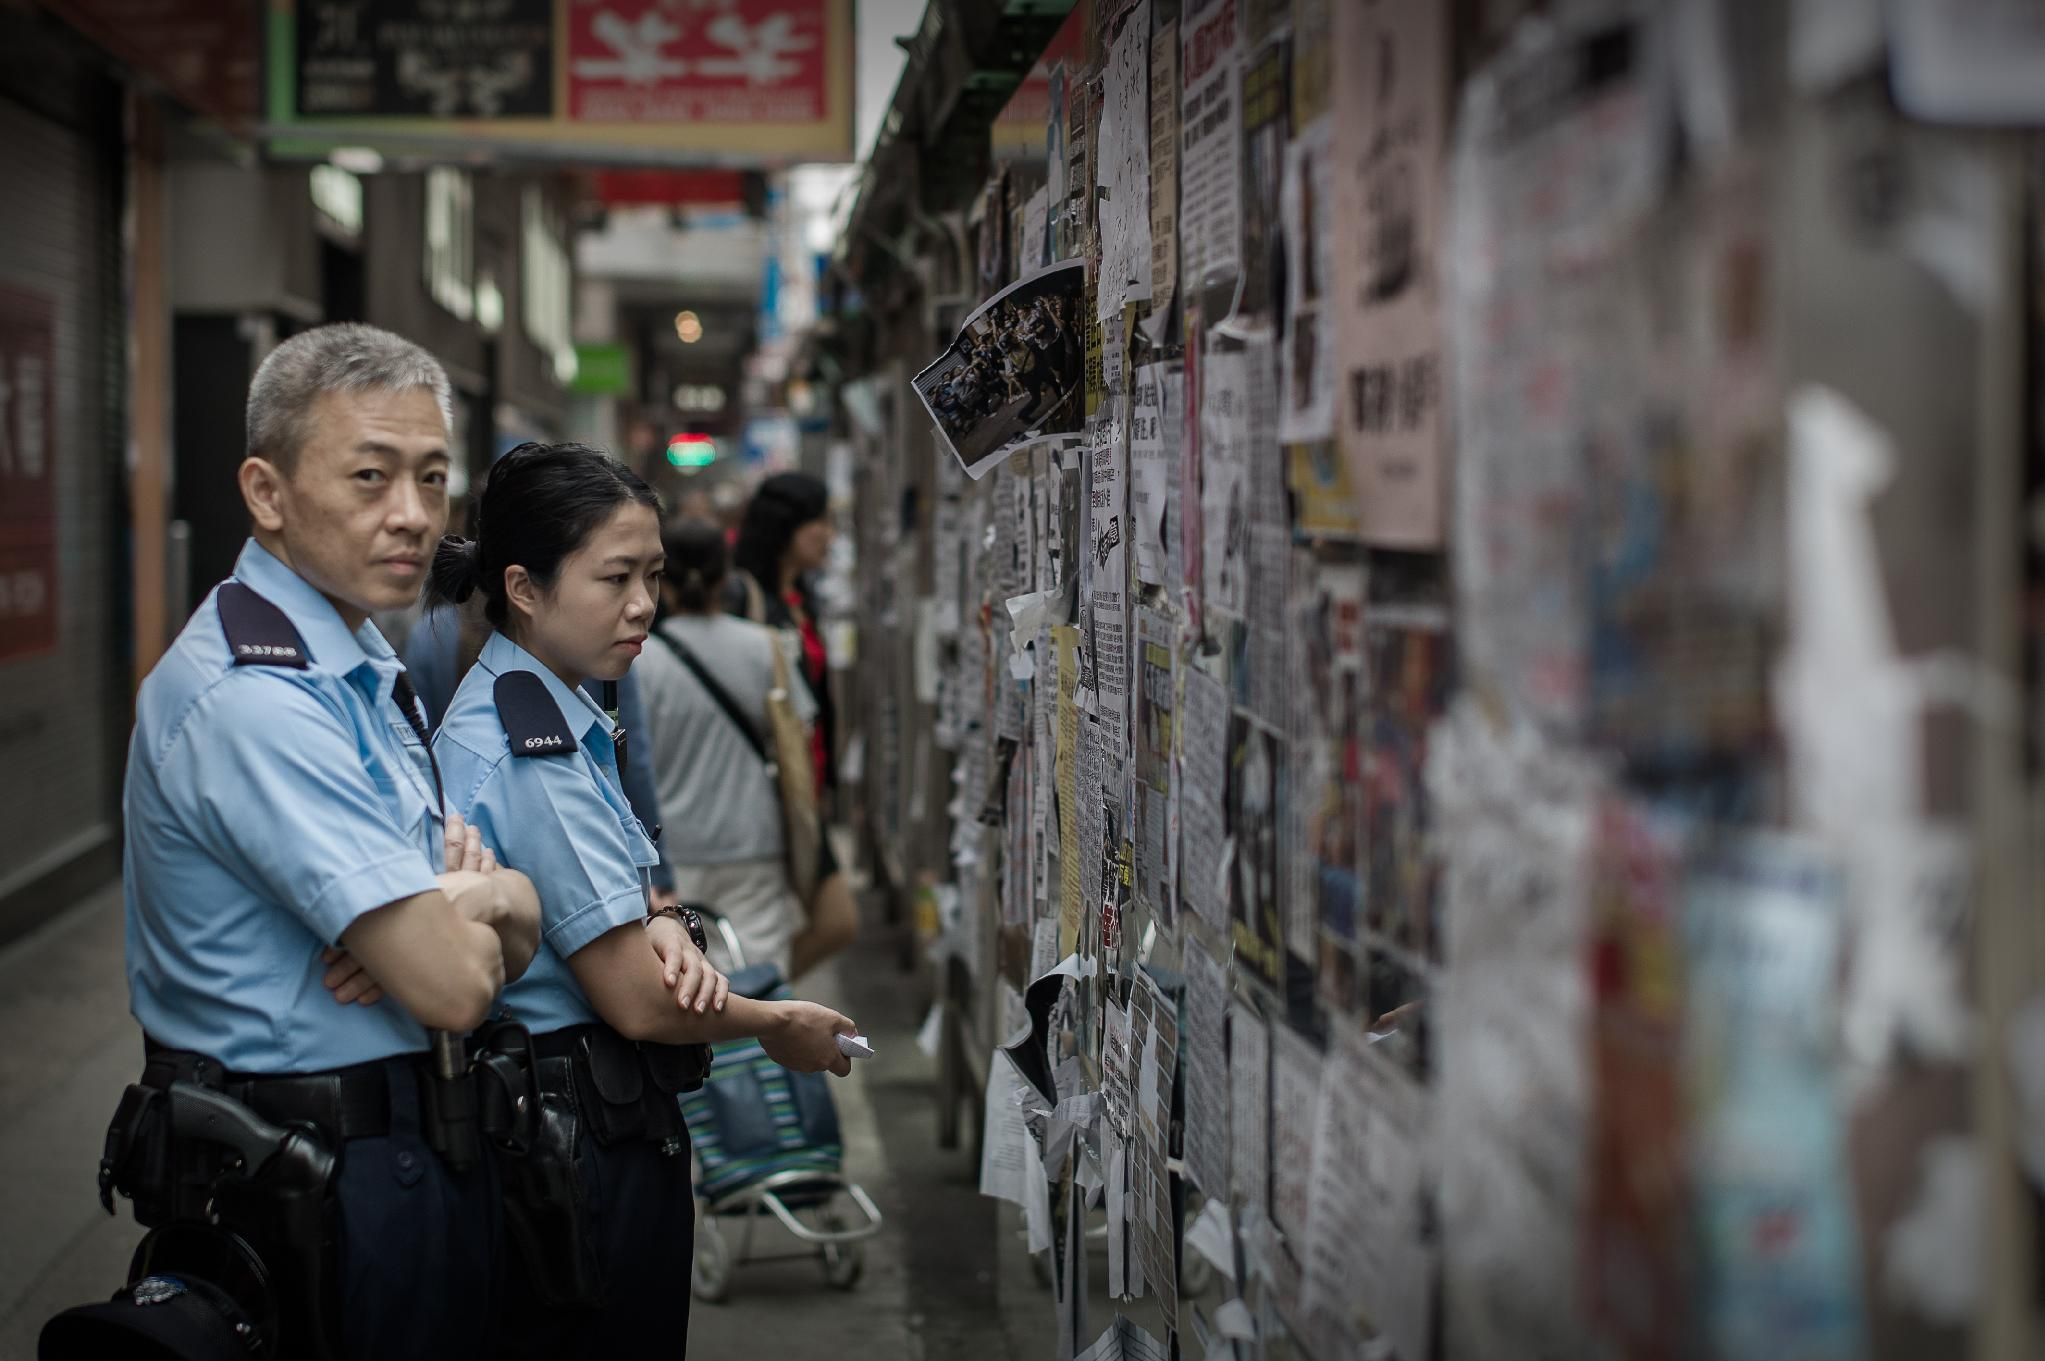 Members of the police look at pro-democracy posters displayed on a bus stop near the encampment of a protest site in the Mongkok district of Hong Kong on November 12, 2014 (AFP Photo/Philippe Lopez)